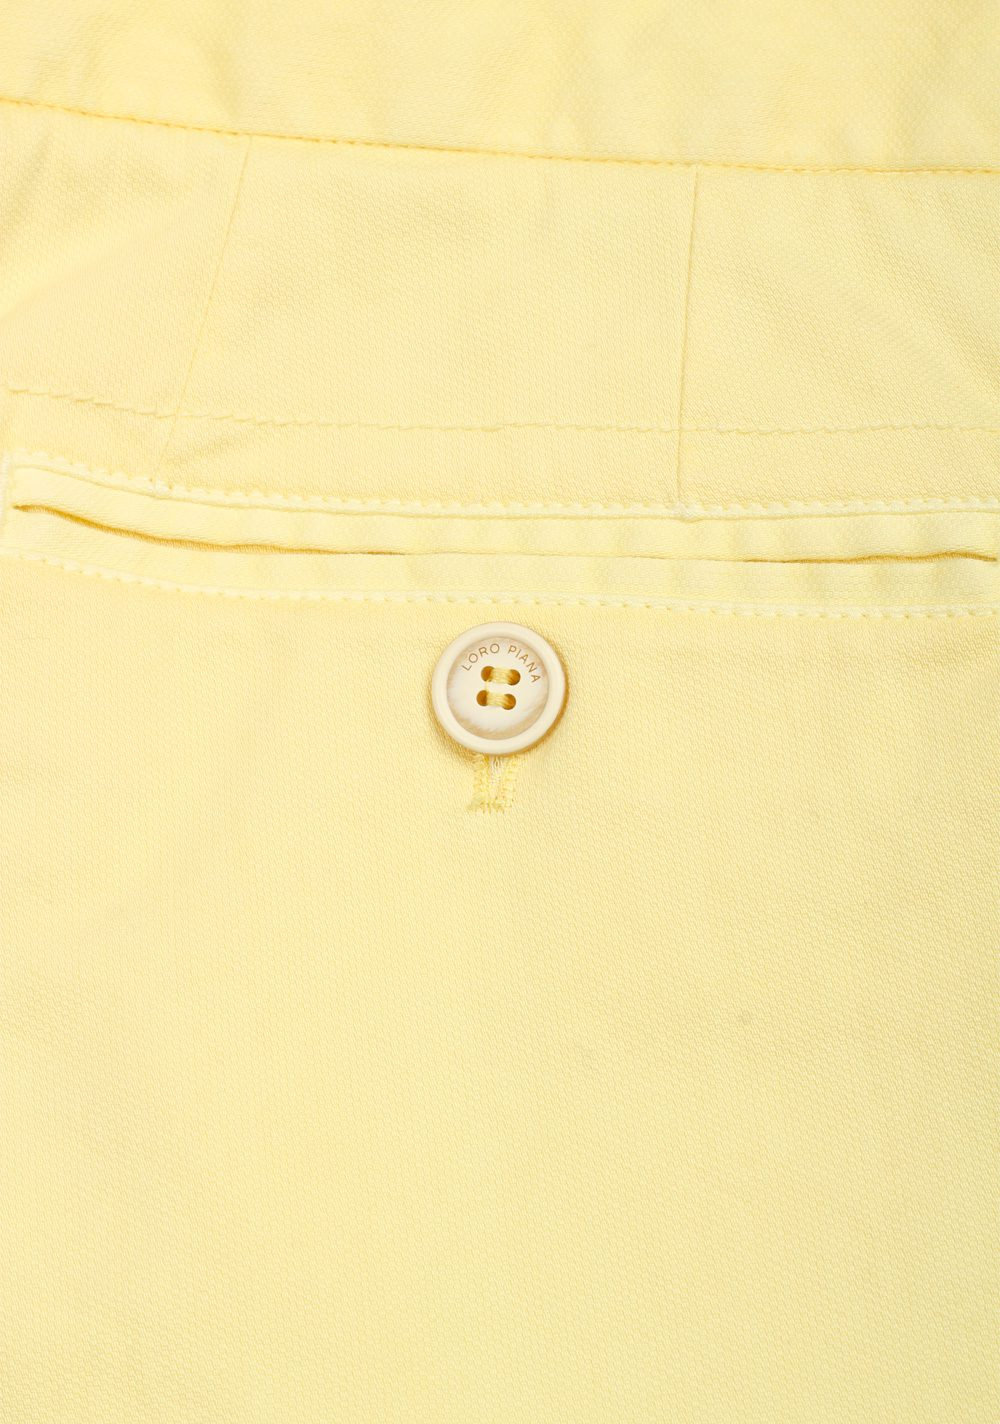 Loro Piana Yellow Trousers Size 50 / 34 U.S. | Costume Limité